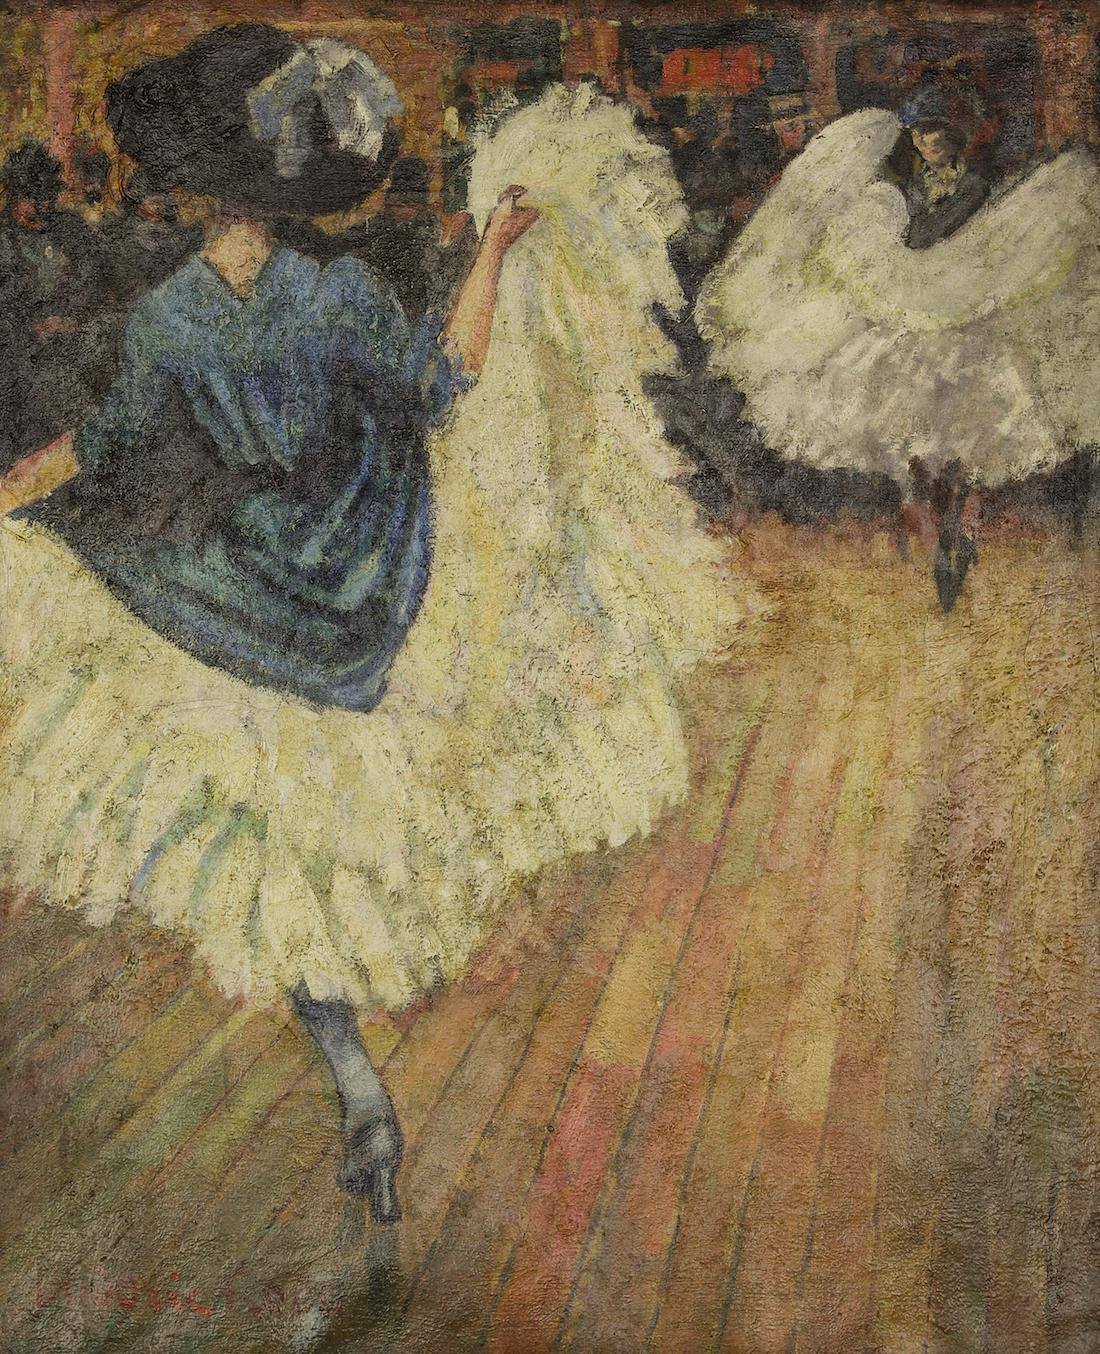 French Cancan by Ludovic-Rodo Pissarro - Post-Impressionist painting, c. 1906